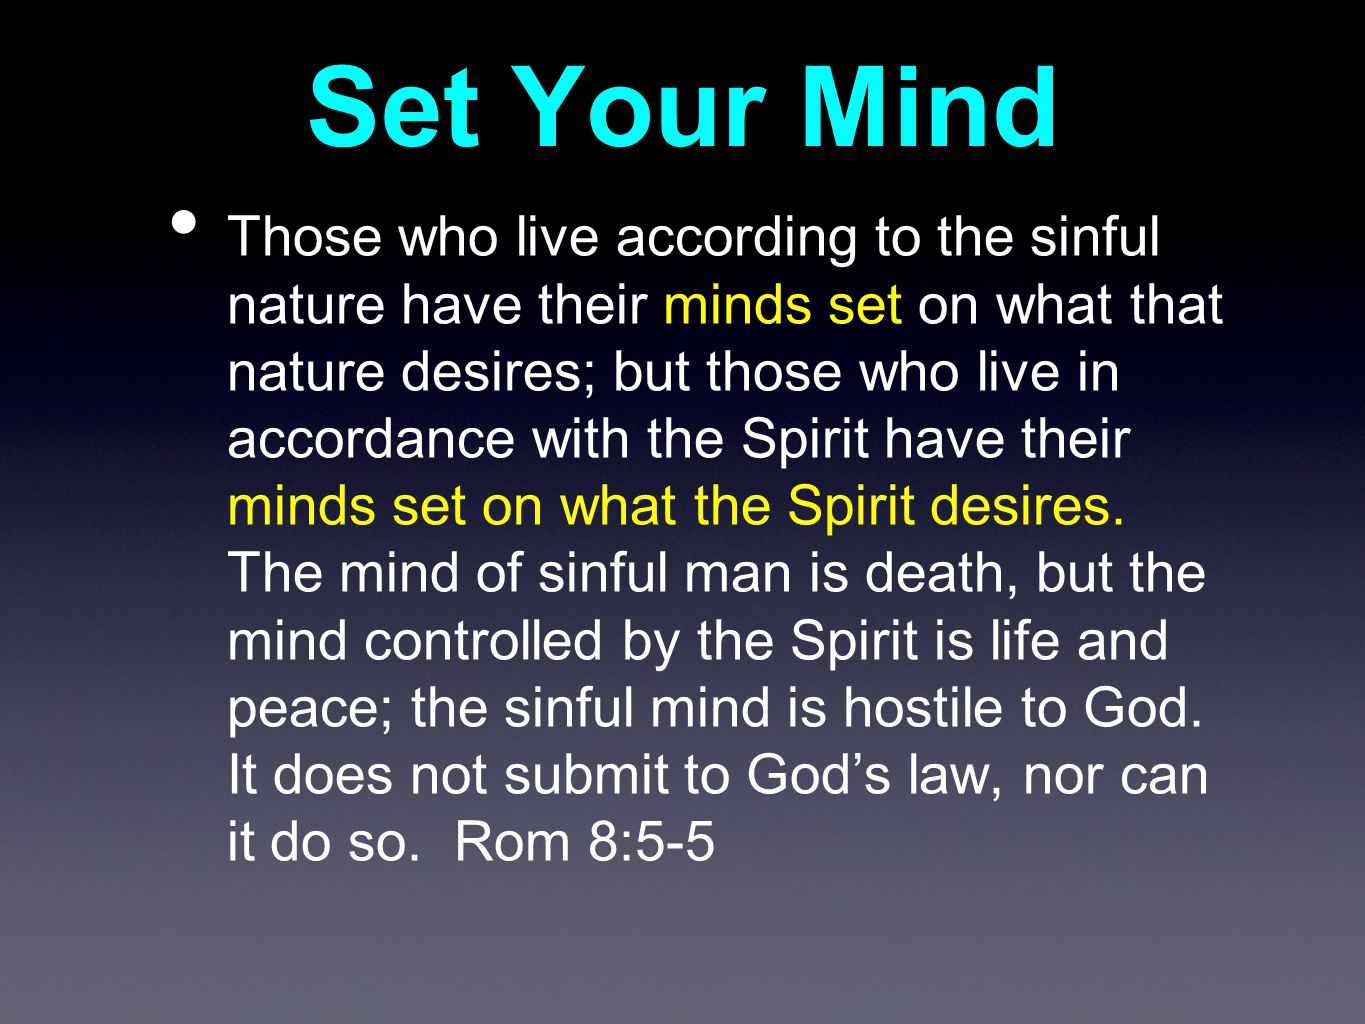 Set Your Mind Those who live according to the sinful nature have their minds set on what that nature desires; but those who live in accordance with the Spirit have their minds set on what the Spirit desires.